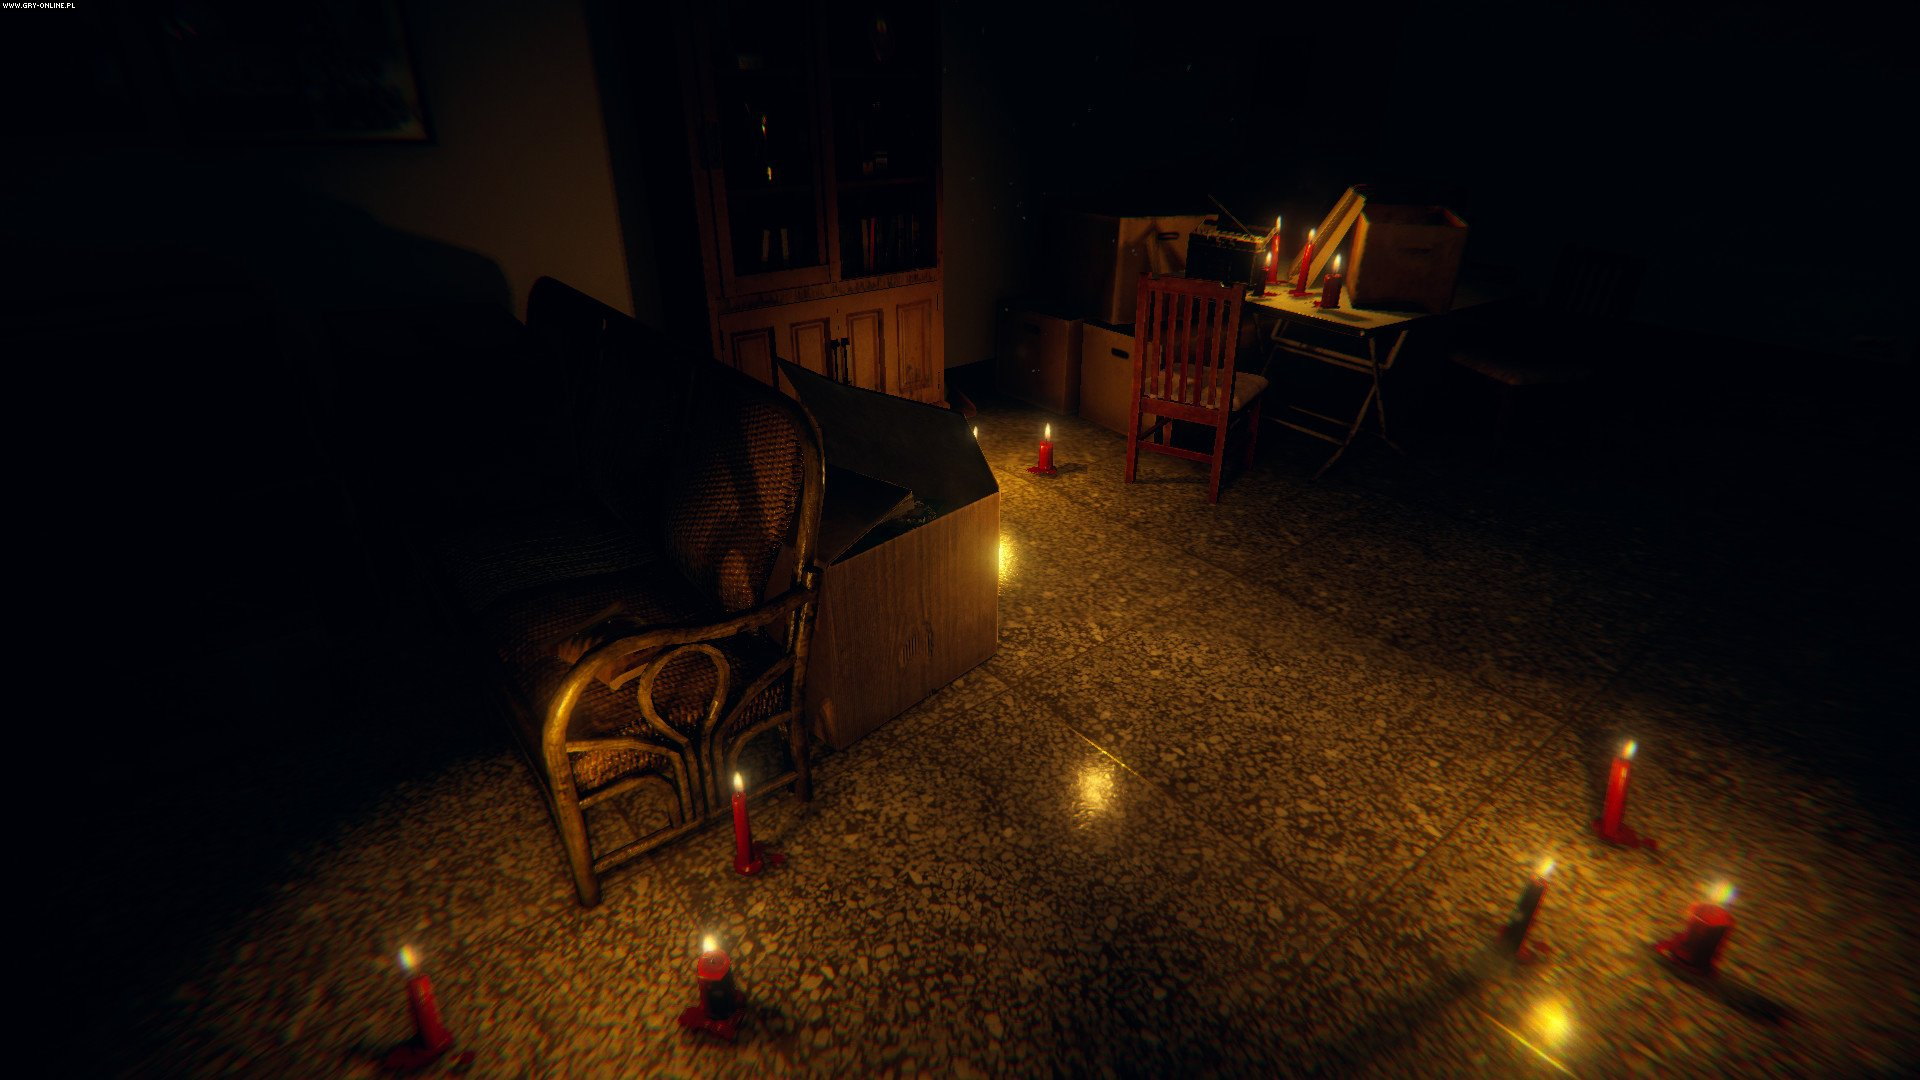 Devotion PC Games Image 3/9, Red Candle Games, Winking Entertainment